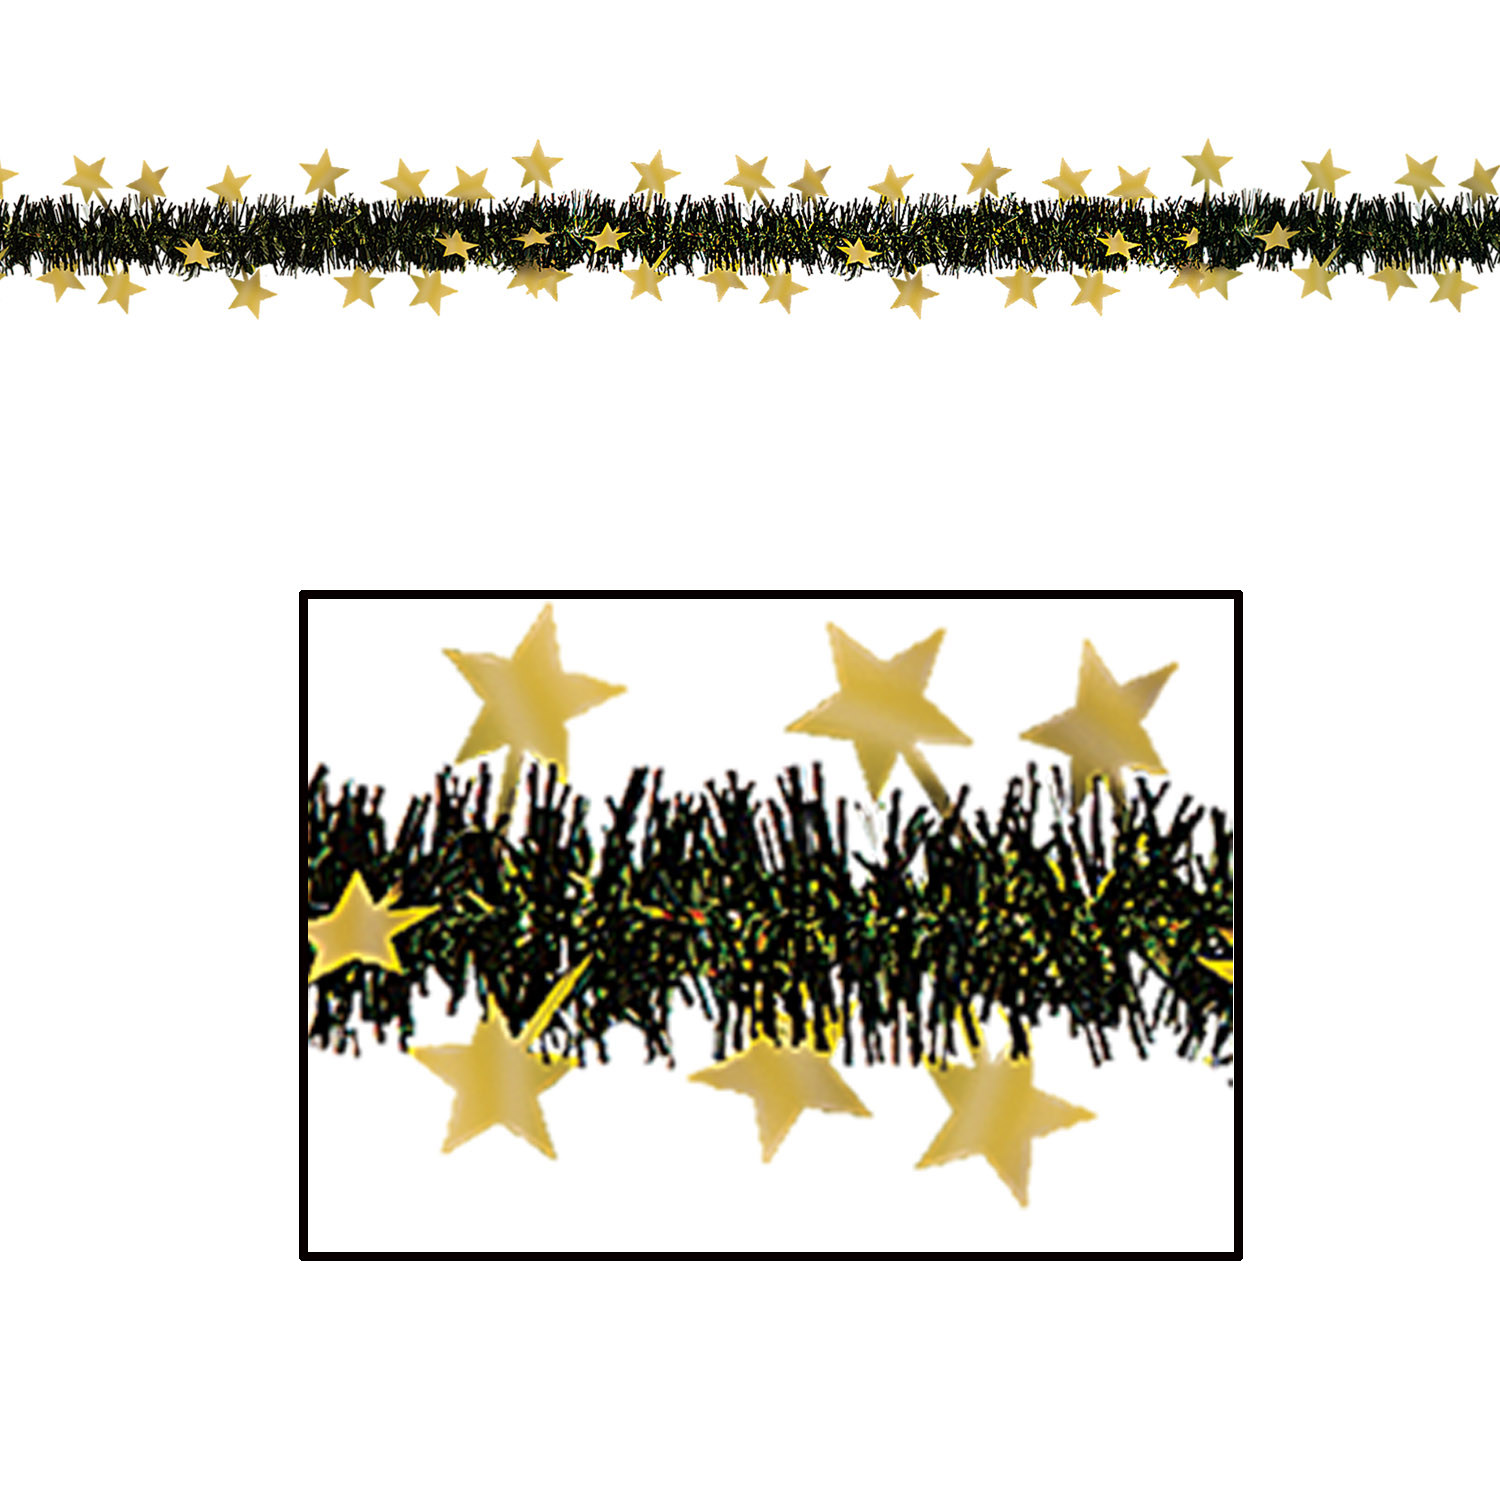 Black and Gold Metallic Star Garland (Pack of 12) Stars, Garland, Metallic Garland, Black and Gold, New Years Eve, Awards Night, Inexpensive Party Decor, Wholesale party favors, Party Supplies